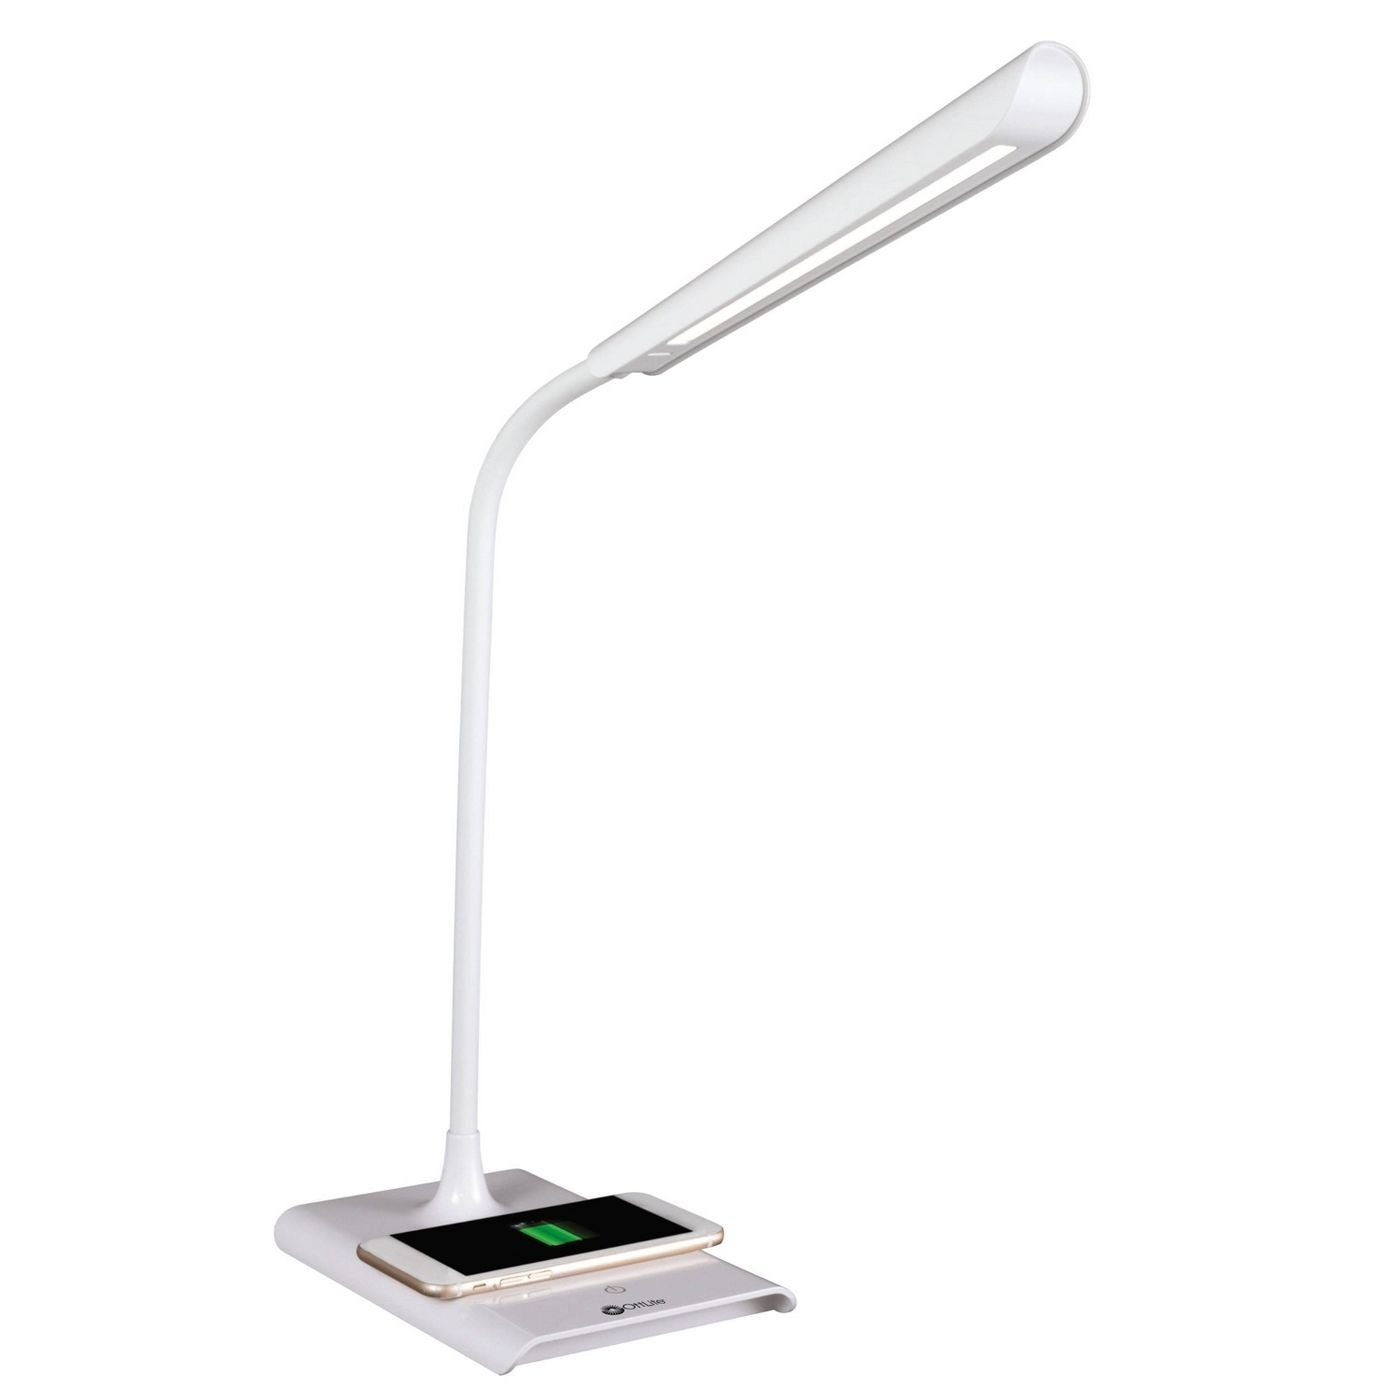 The lamp with an iPhone charging on it